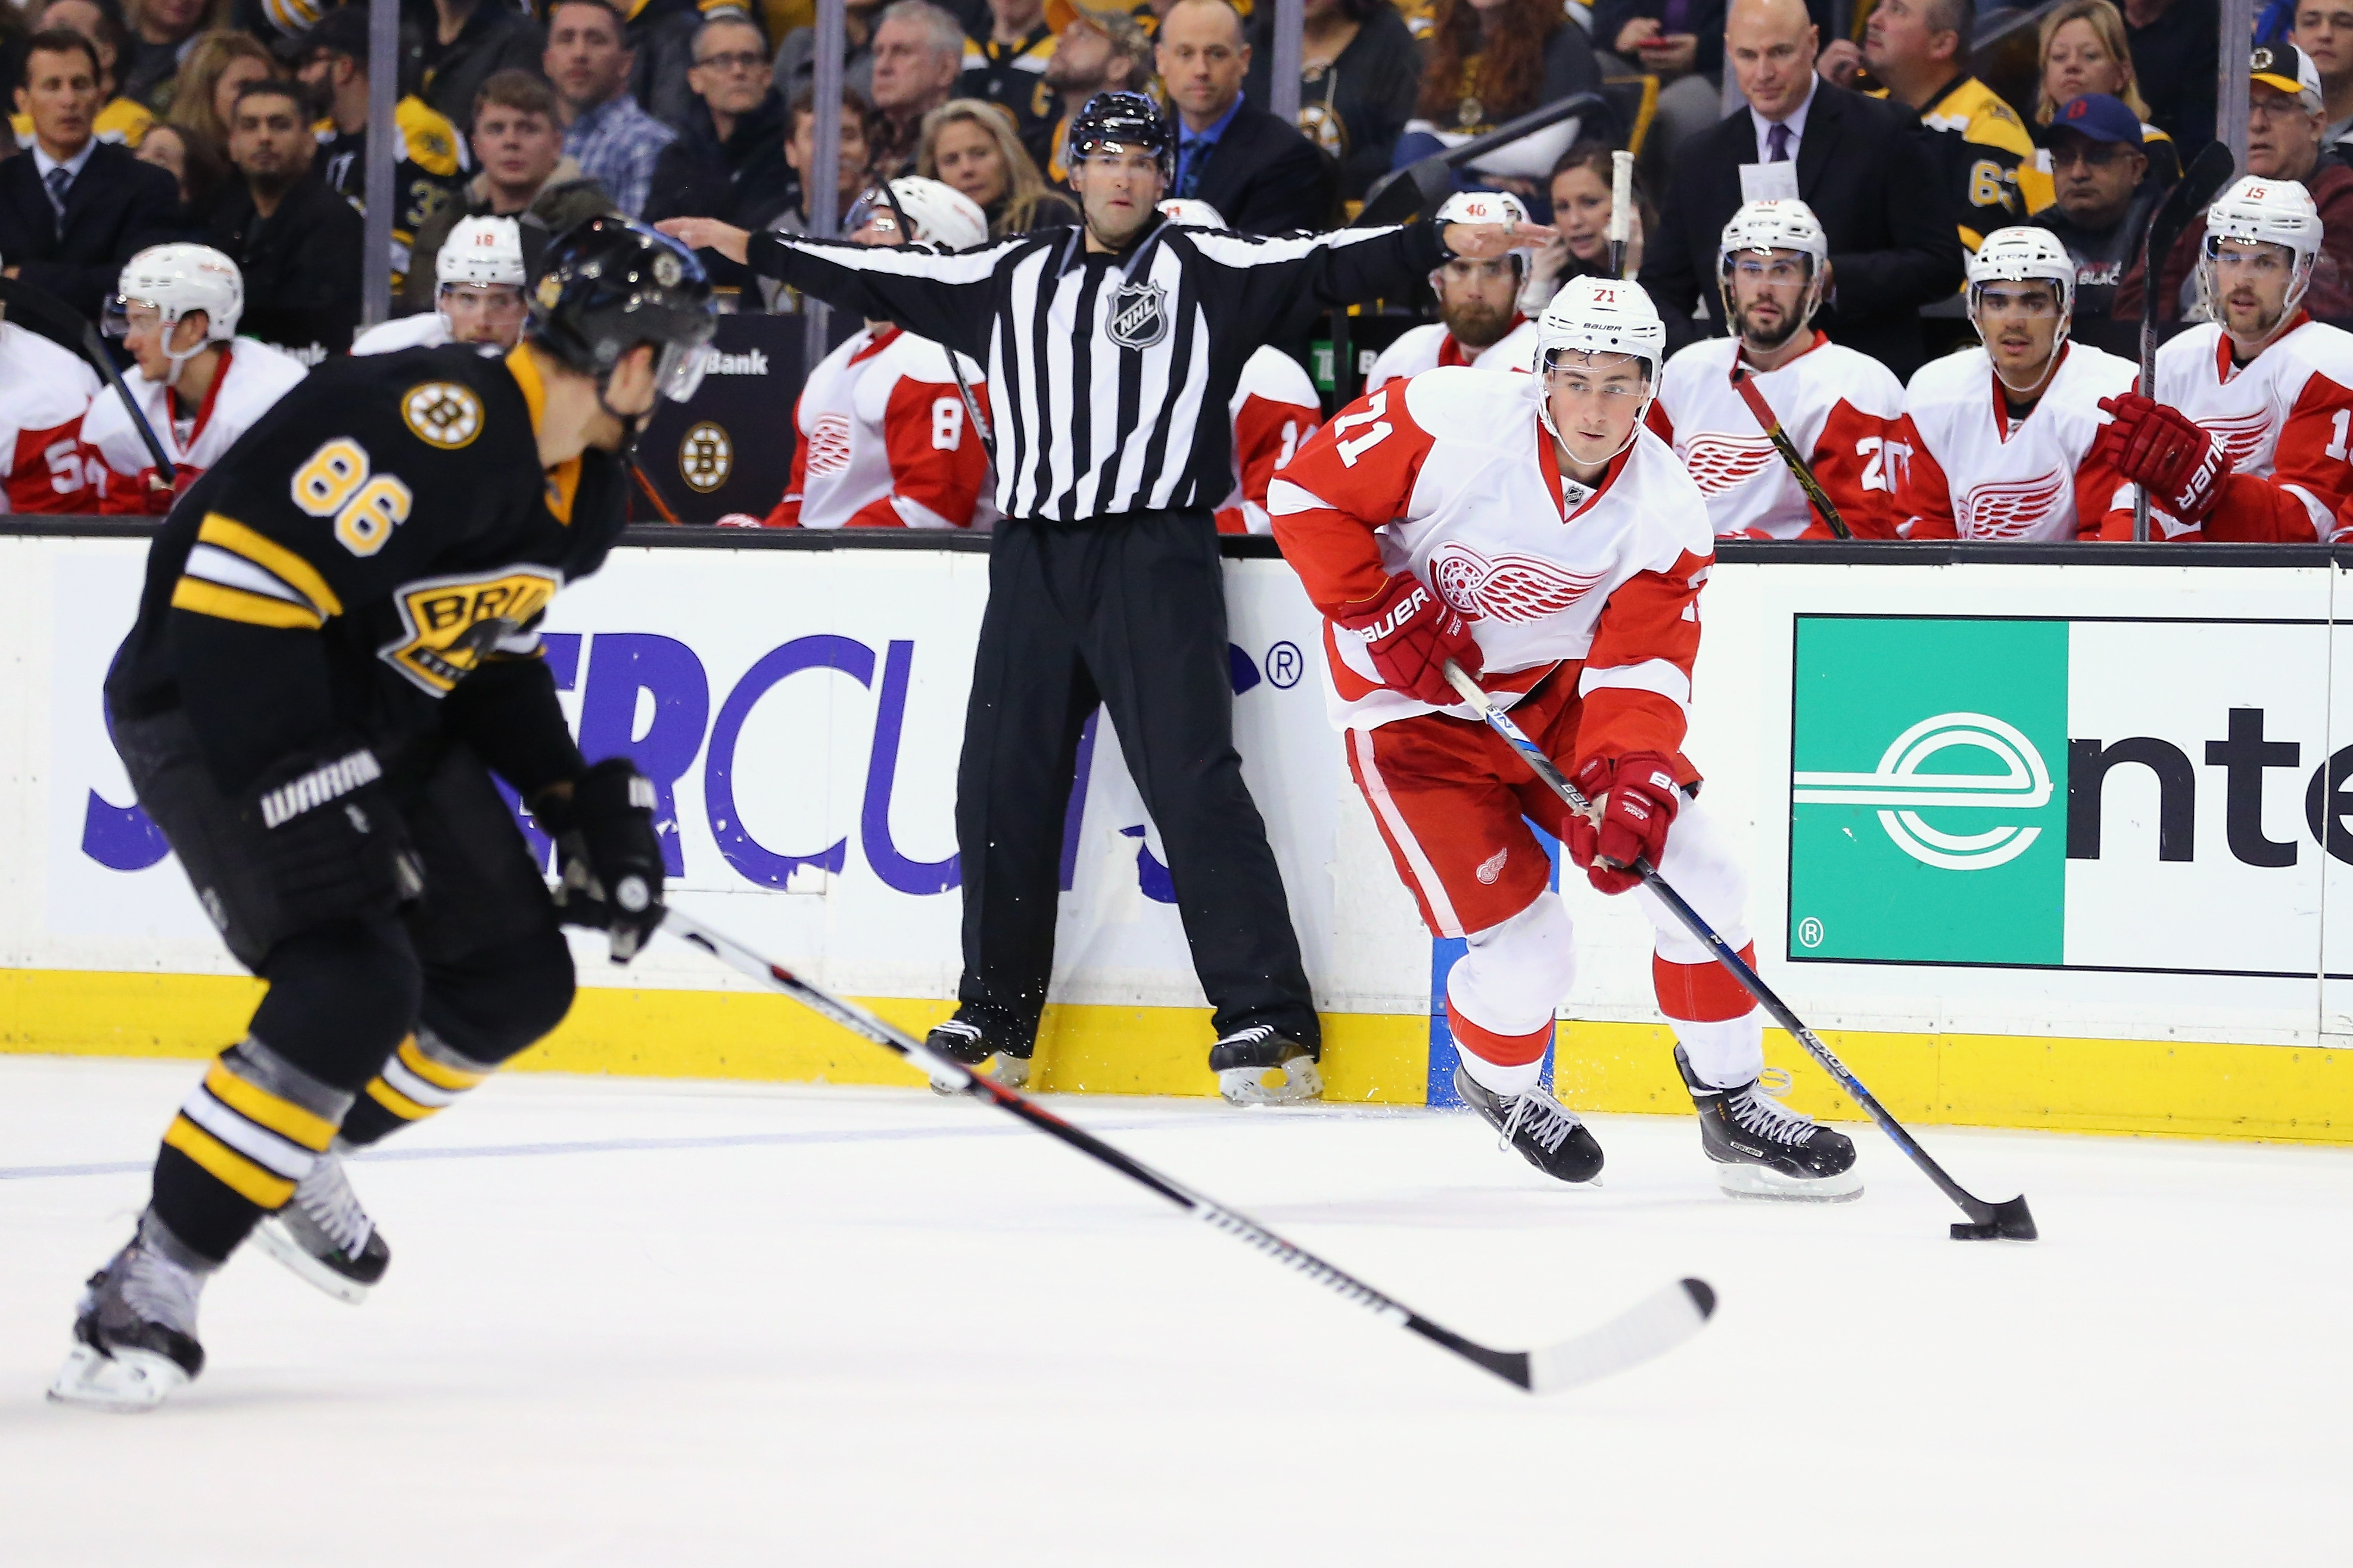 Red Wings rookie Dylan Larkin has 10 goals and 18 points in his first 24 games centering Detroit's top line.